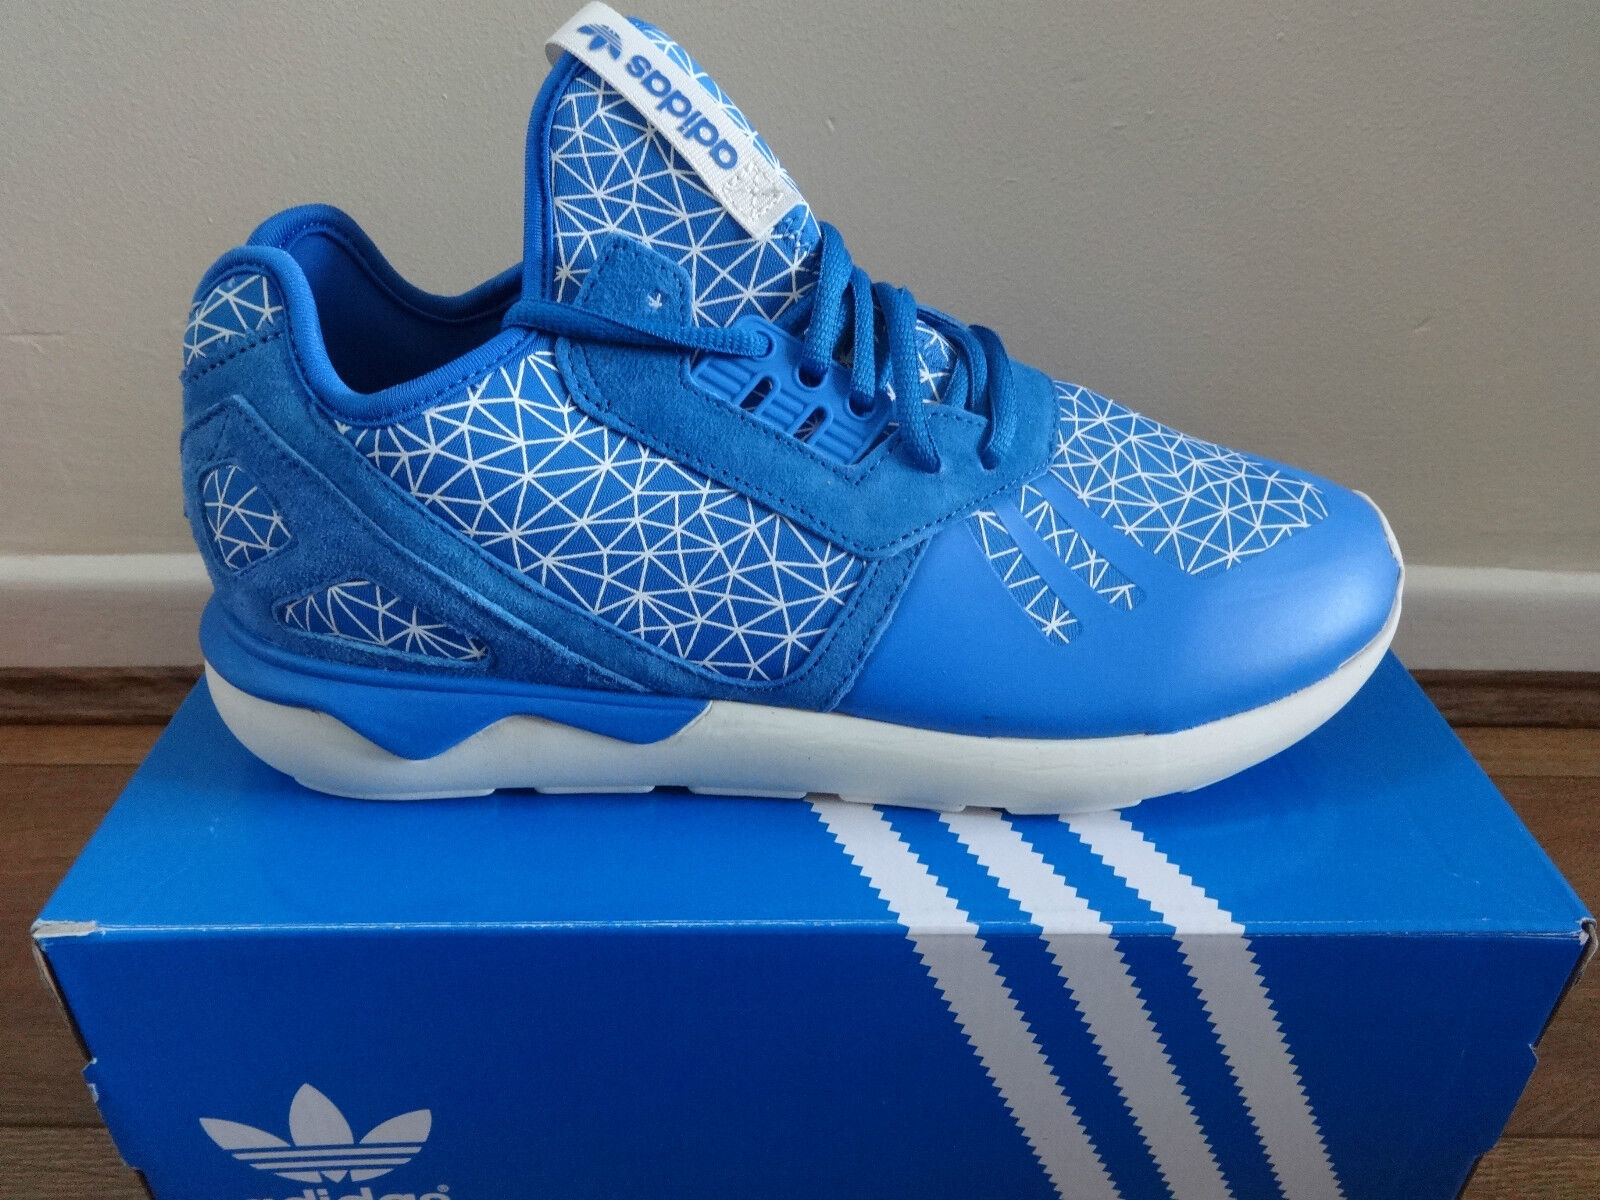 Adidas Originals Tubular Runner Casual Trainers shoes sneakers M19641 NEW+BOX